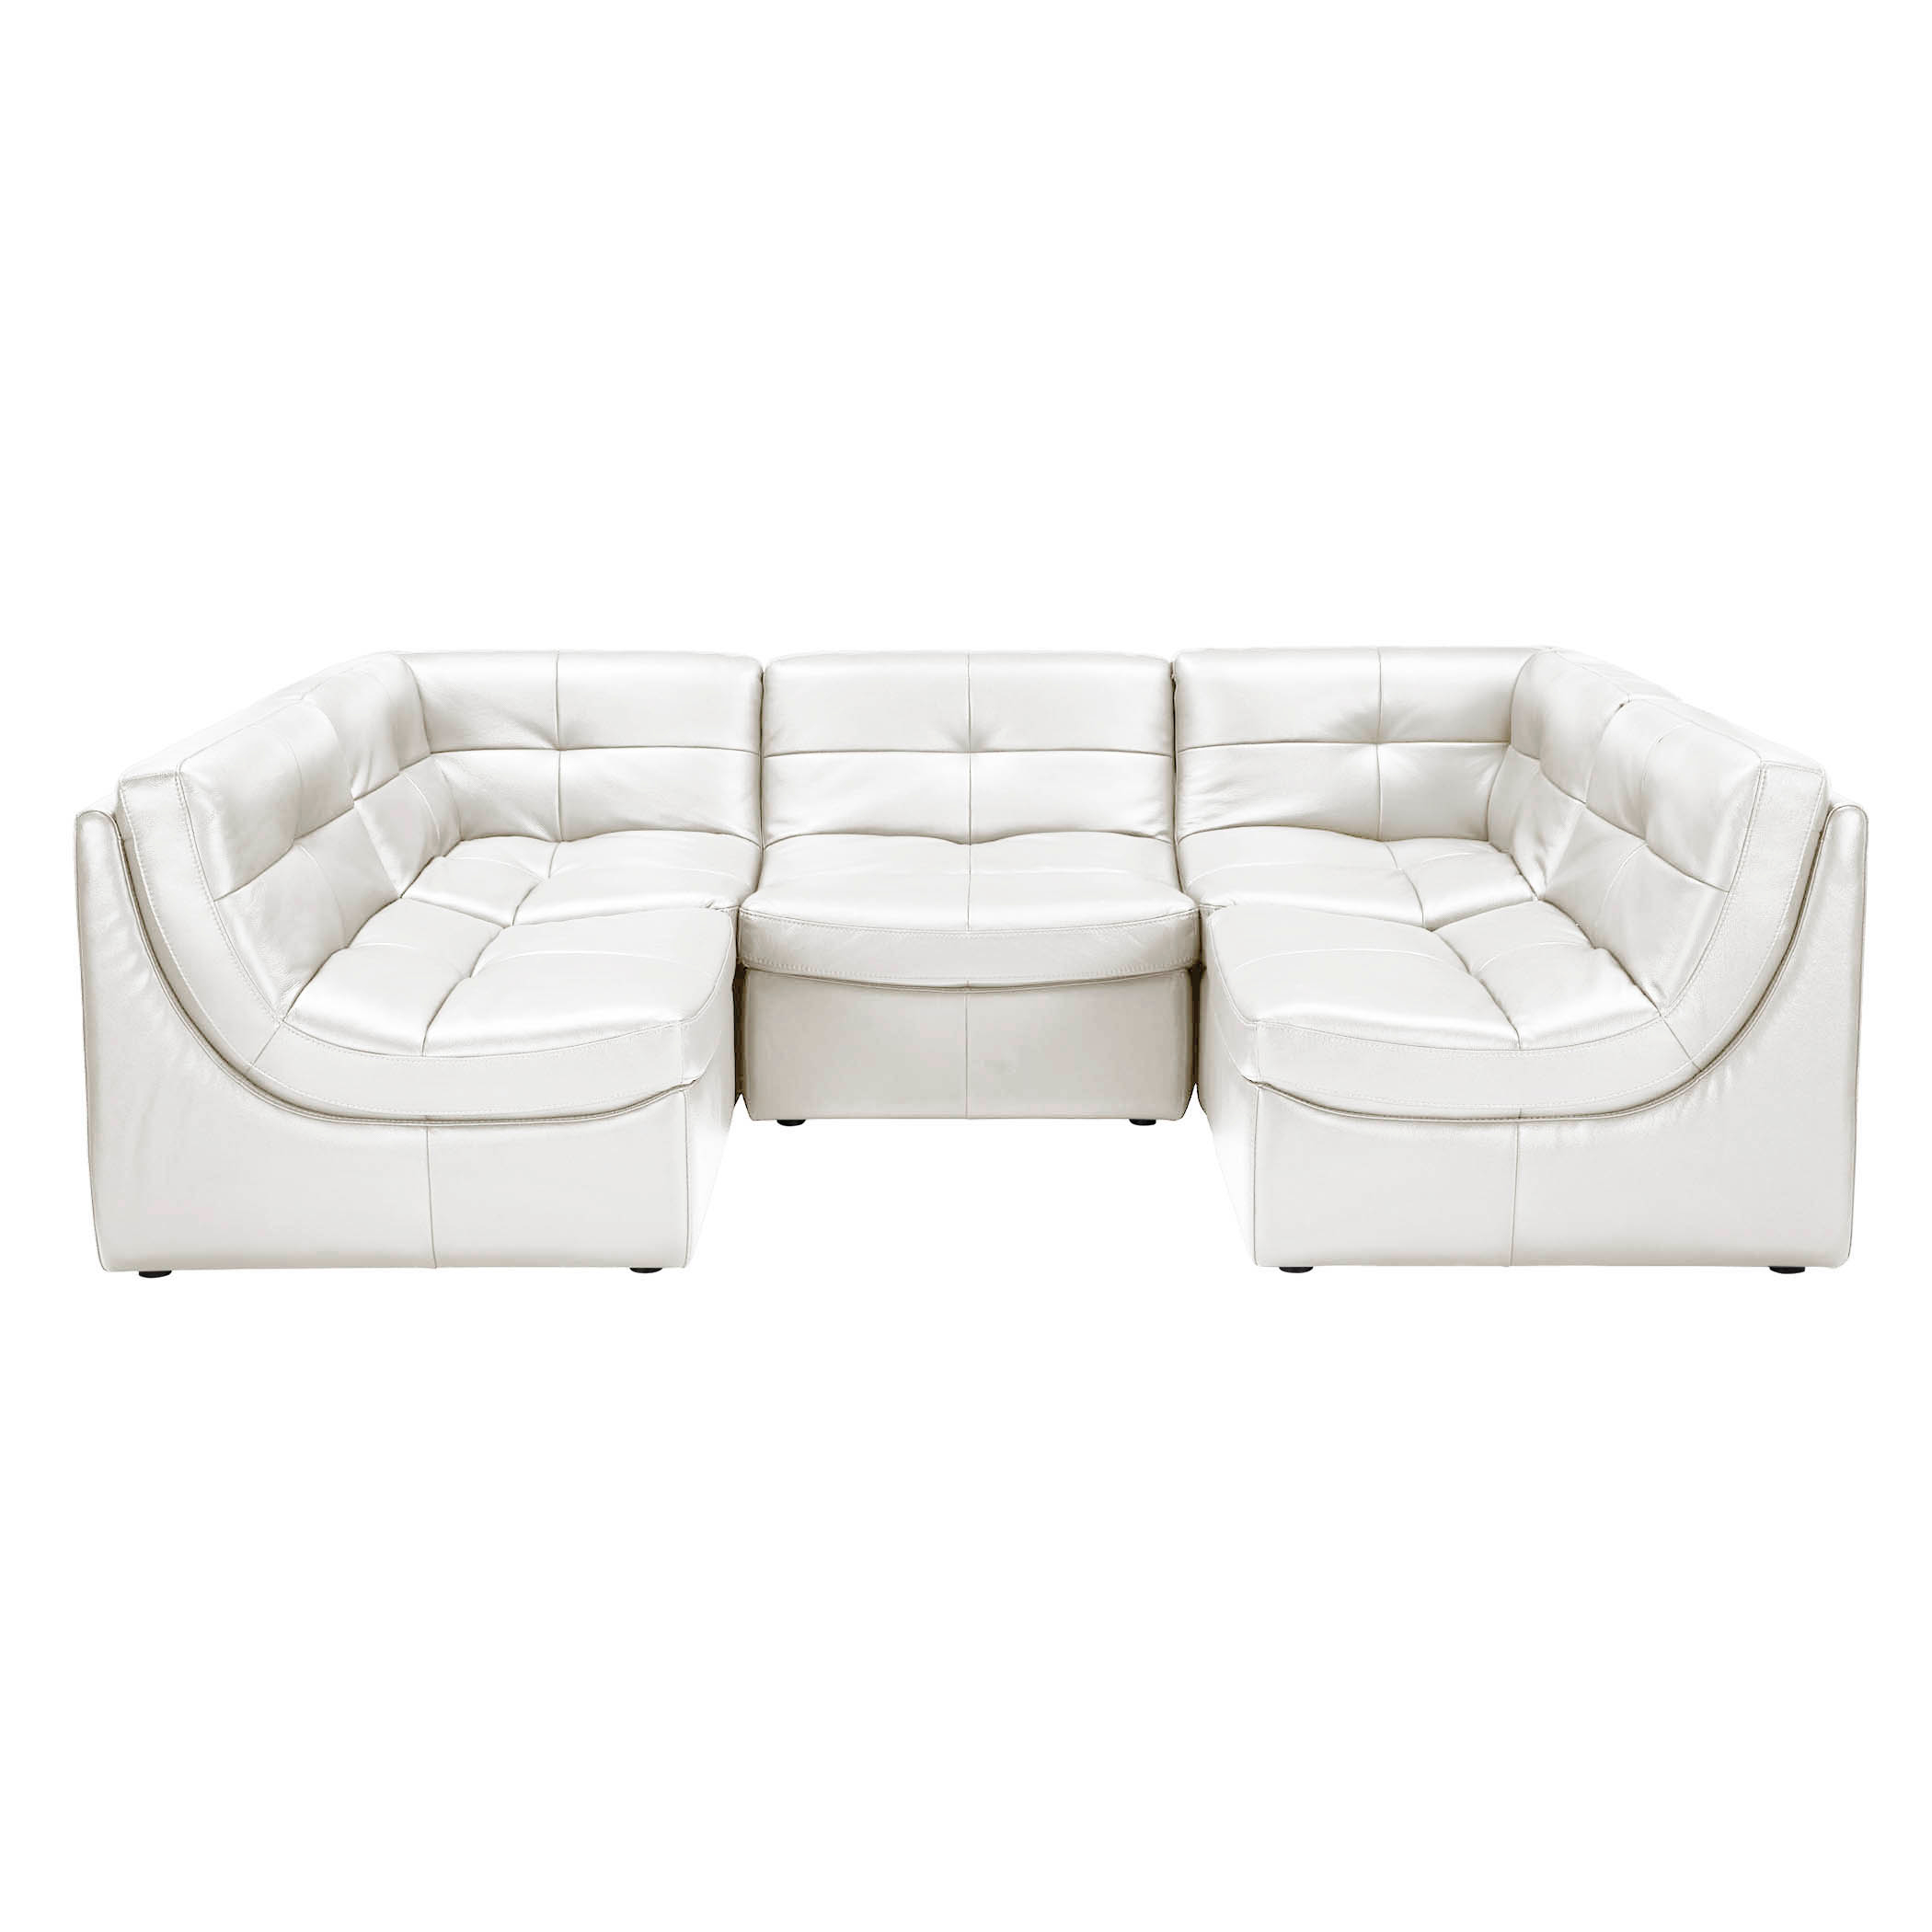 Convo Leather Sectional - Build Your Own